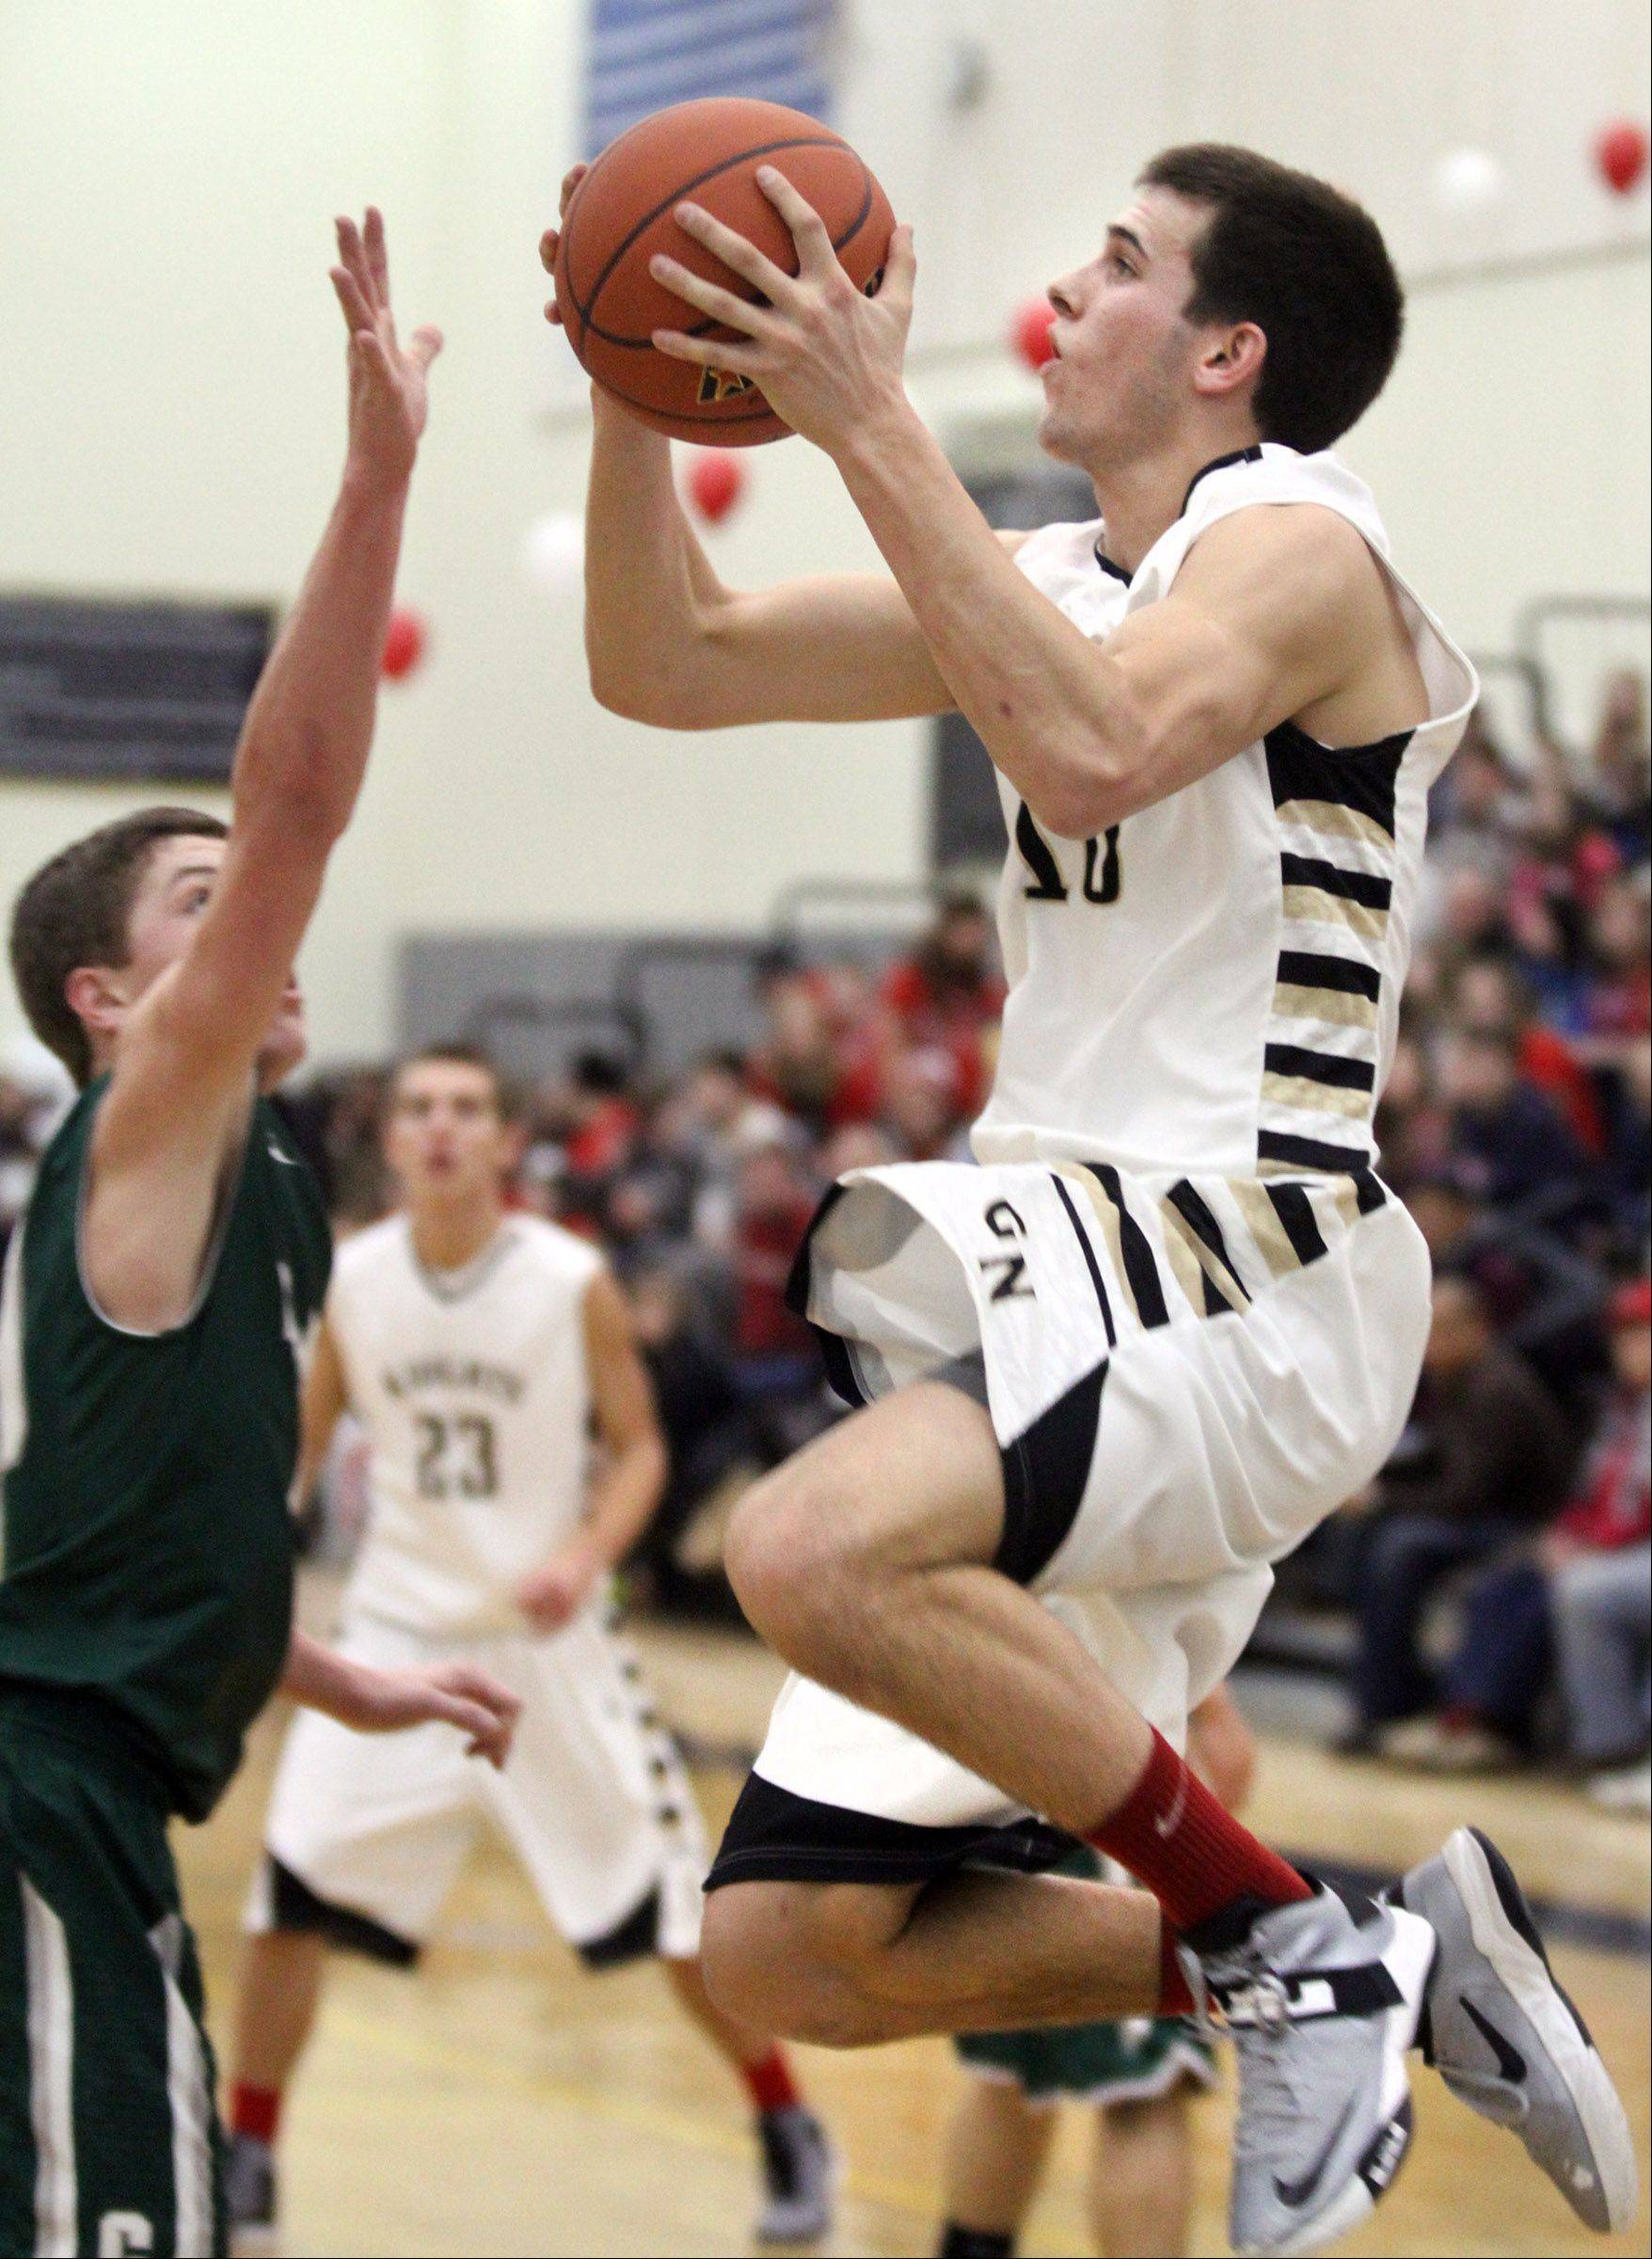 George LeClaire/gleclaire@dailyherald.com Grayslake North forward A.J. Fish puts the ball up against Grayslake Central defender Joey Mudd at Grayslake North on Friday.